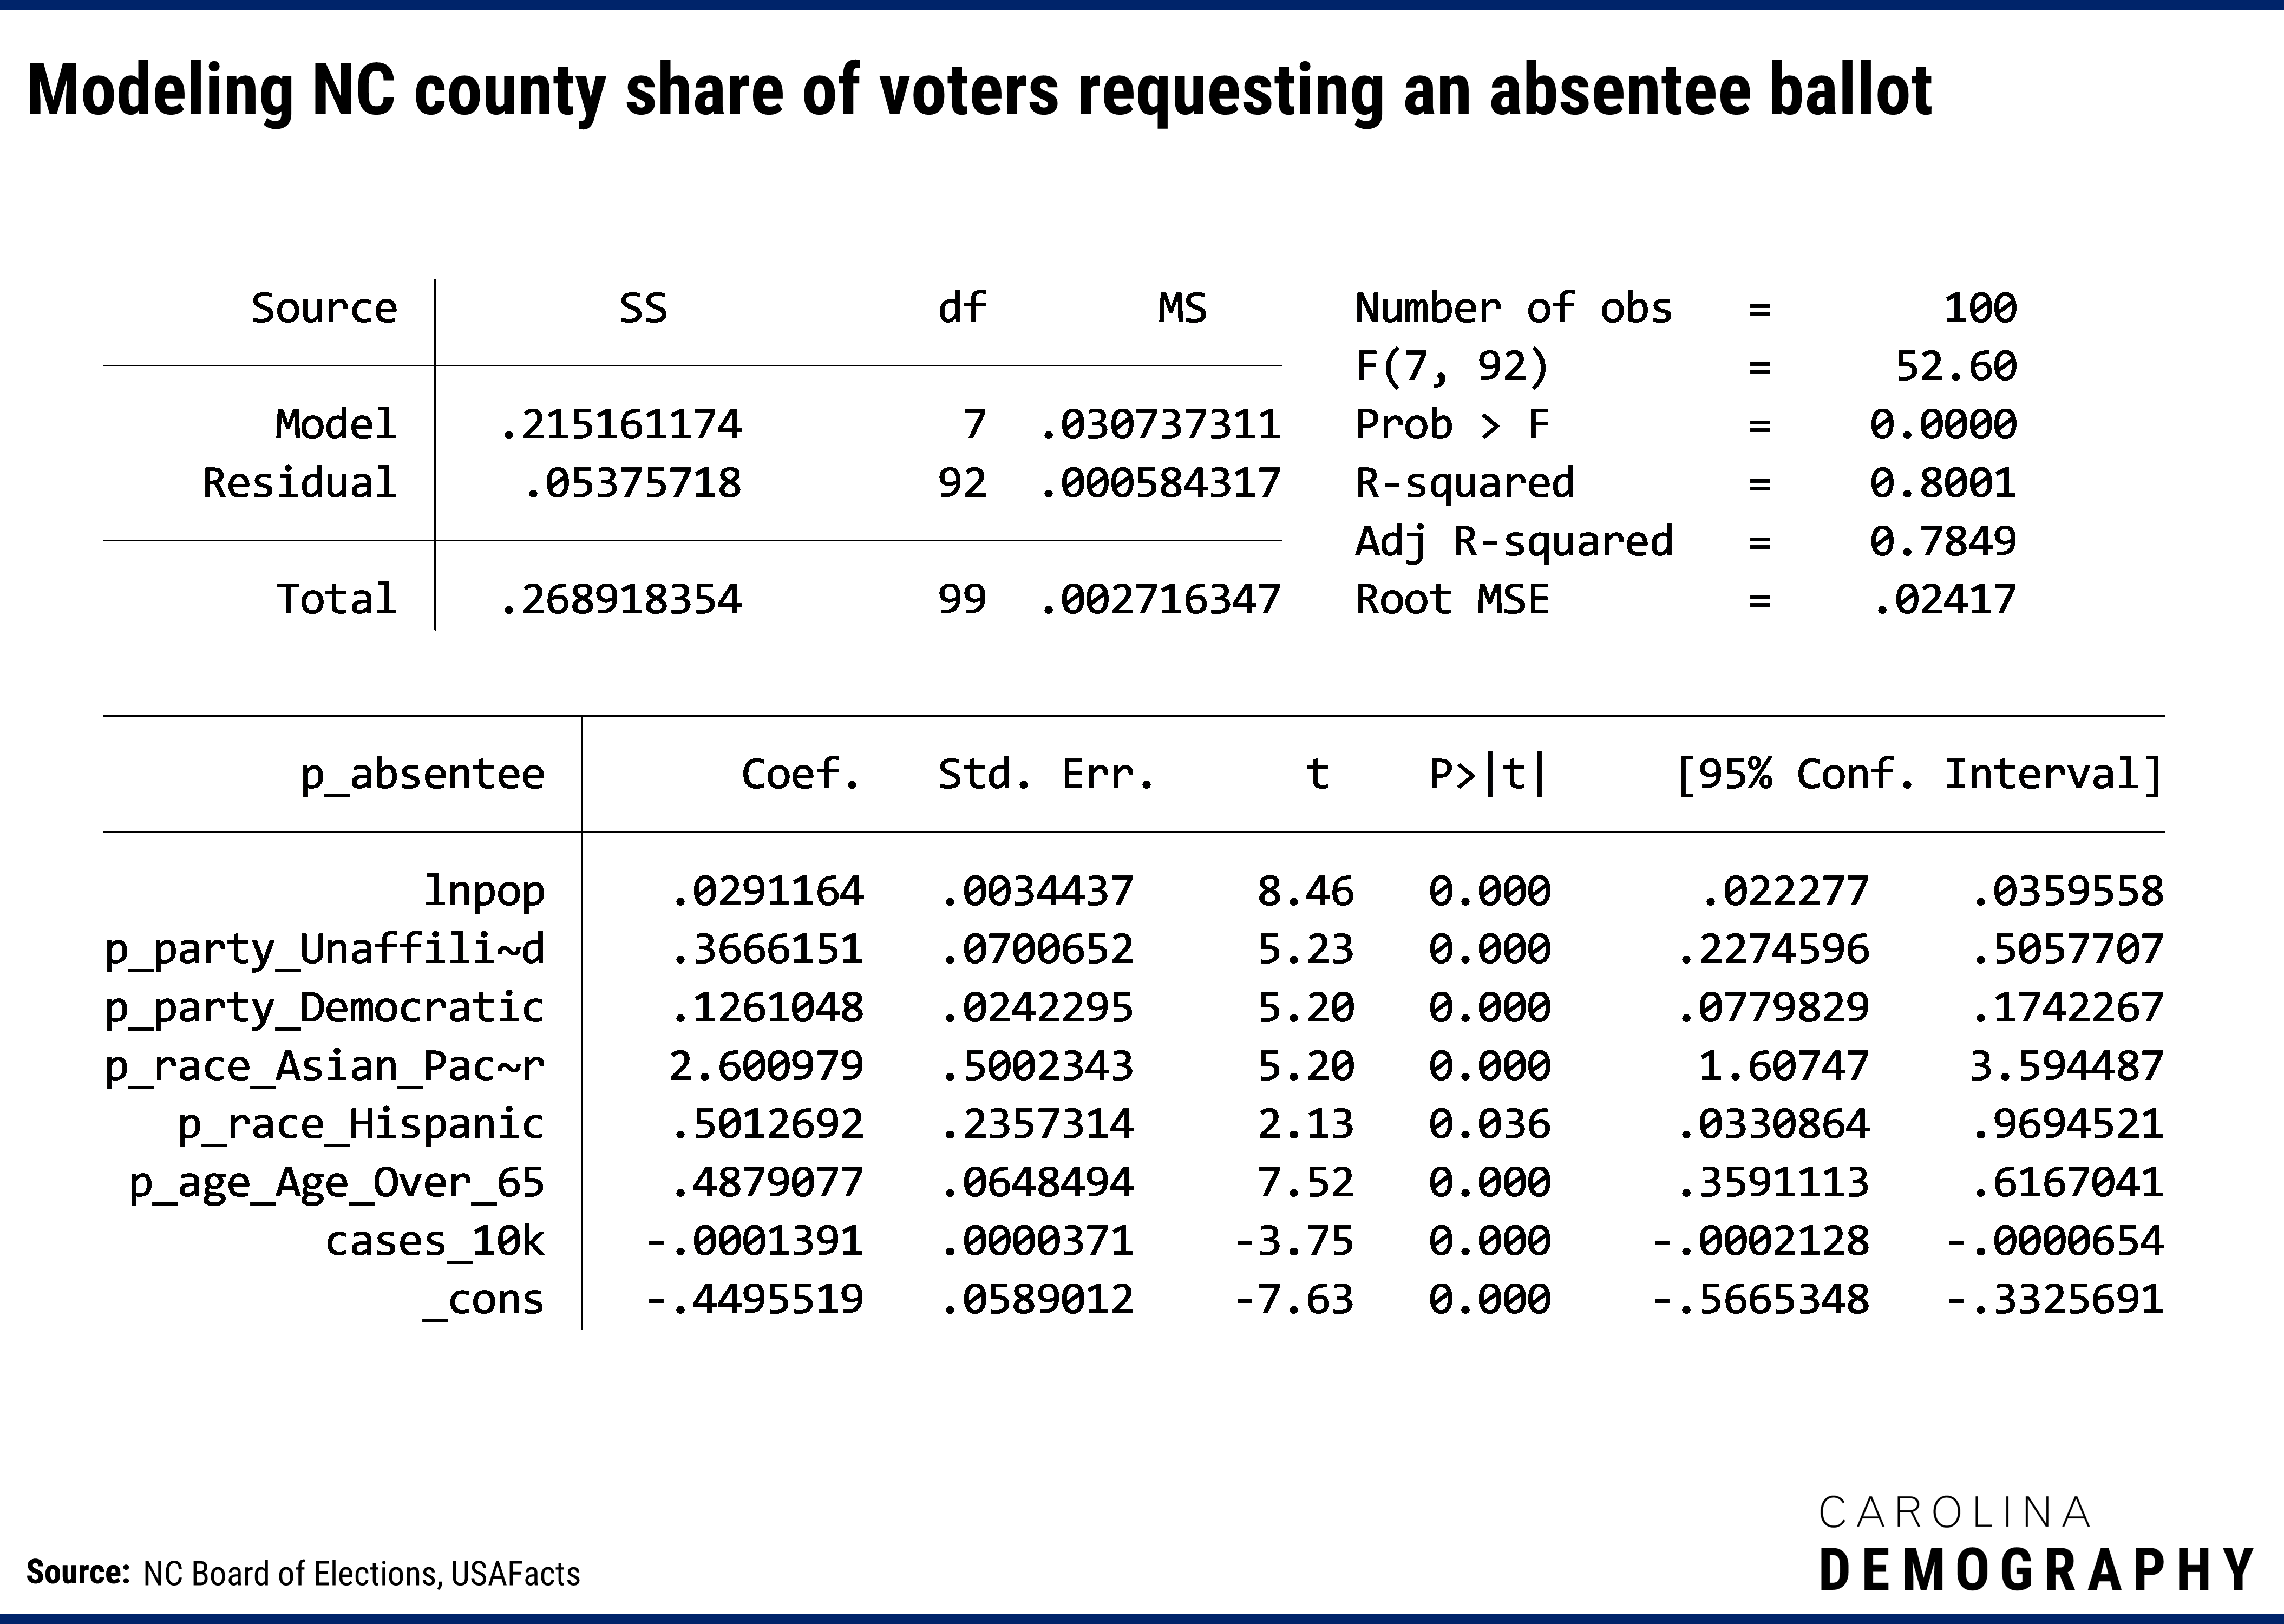 Code snip showing the calculations for modeling NC county share of voters requesting an absentee ballot